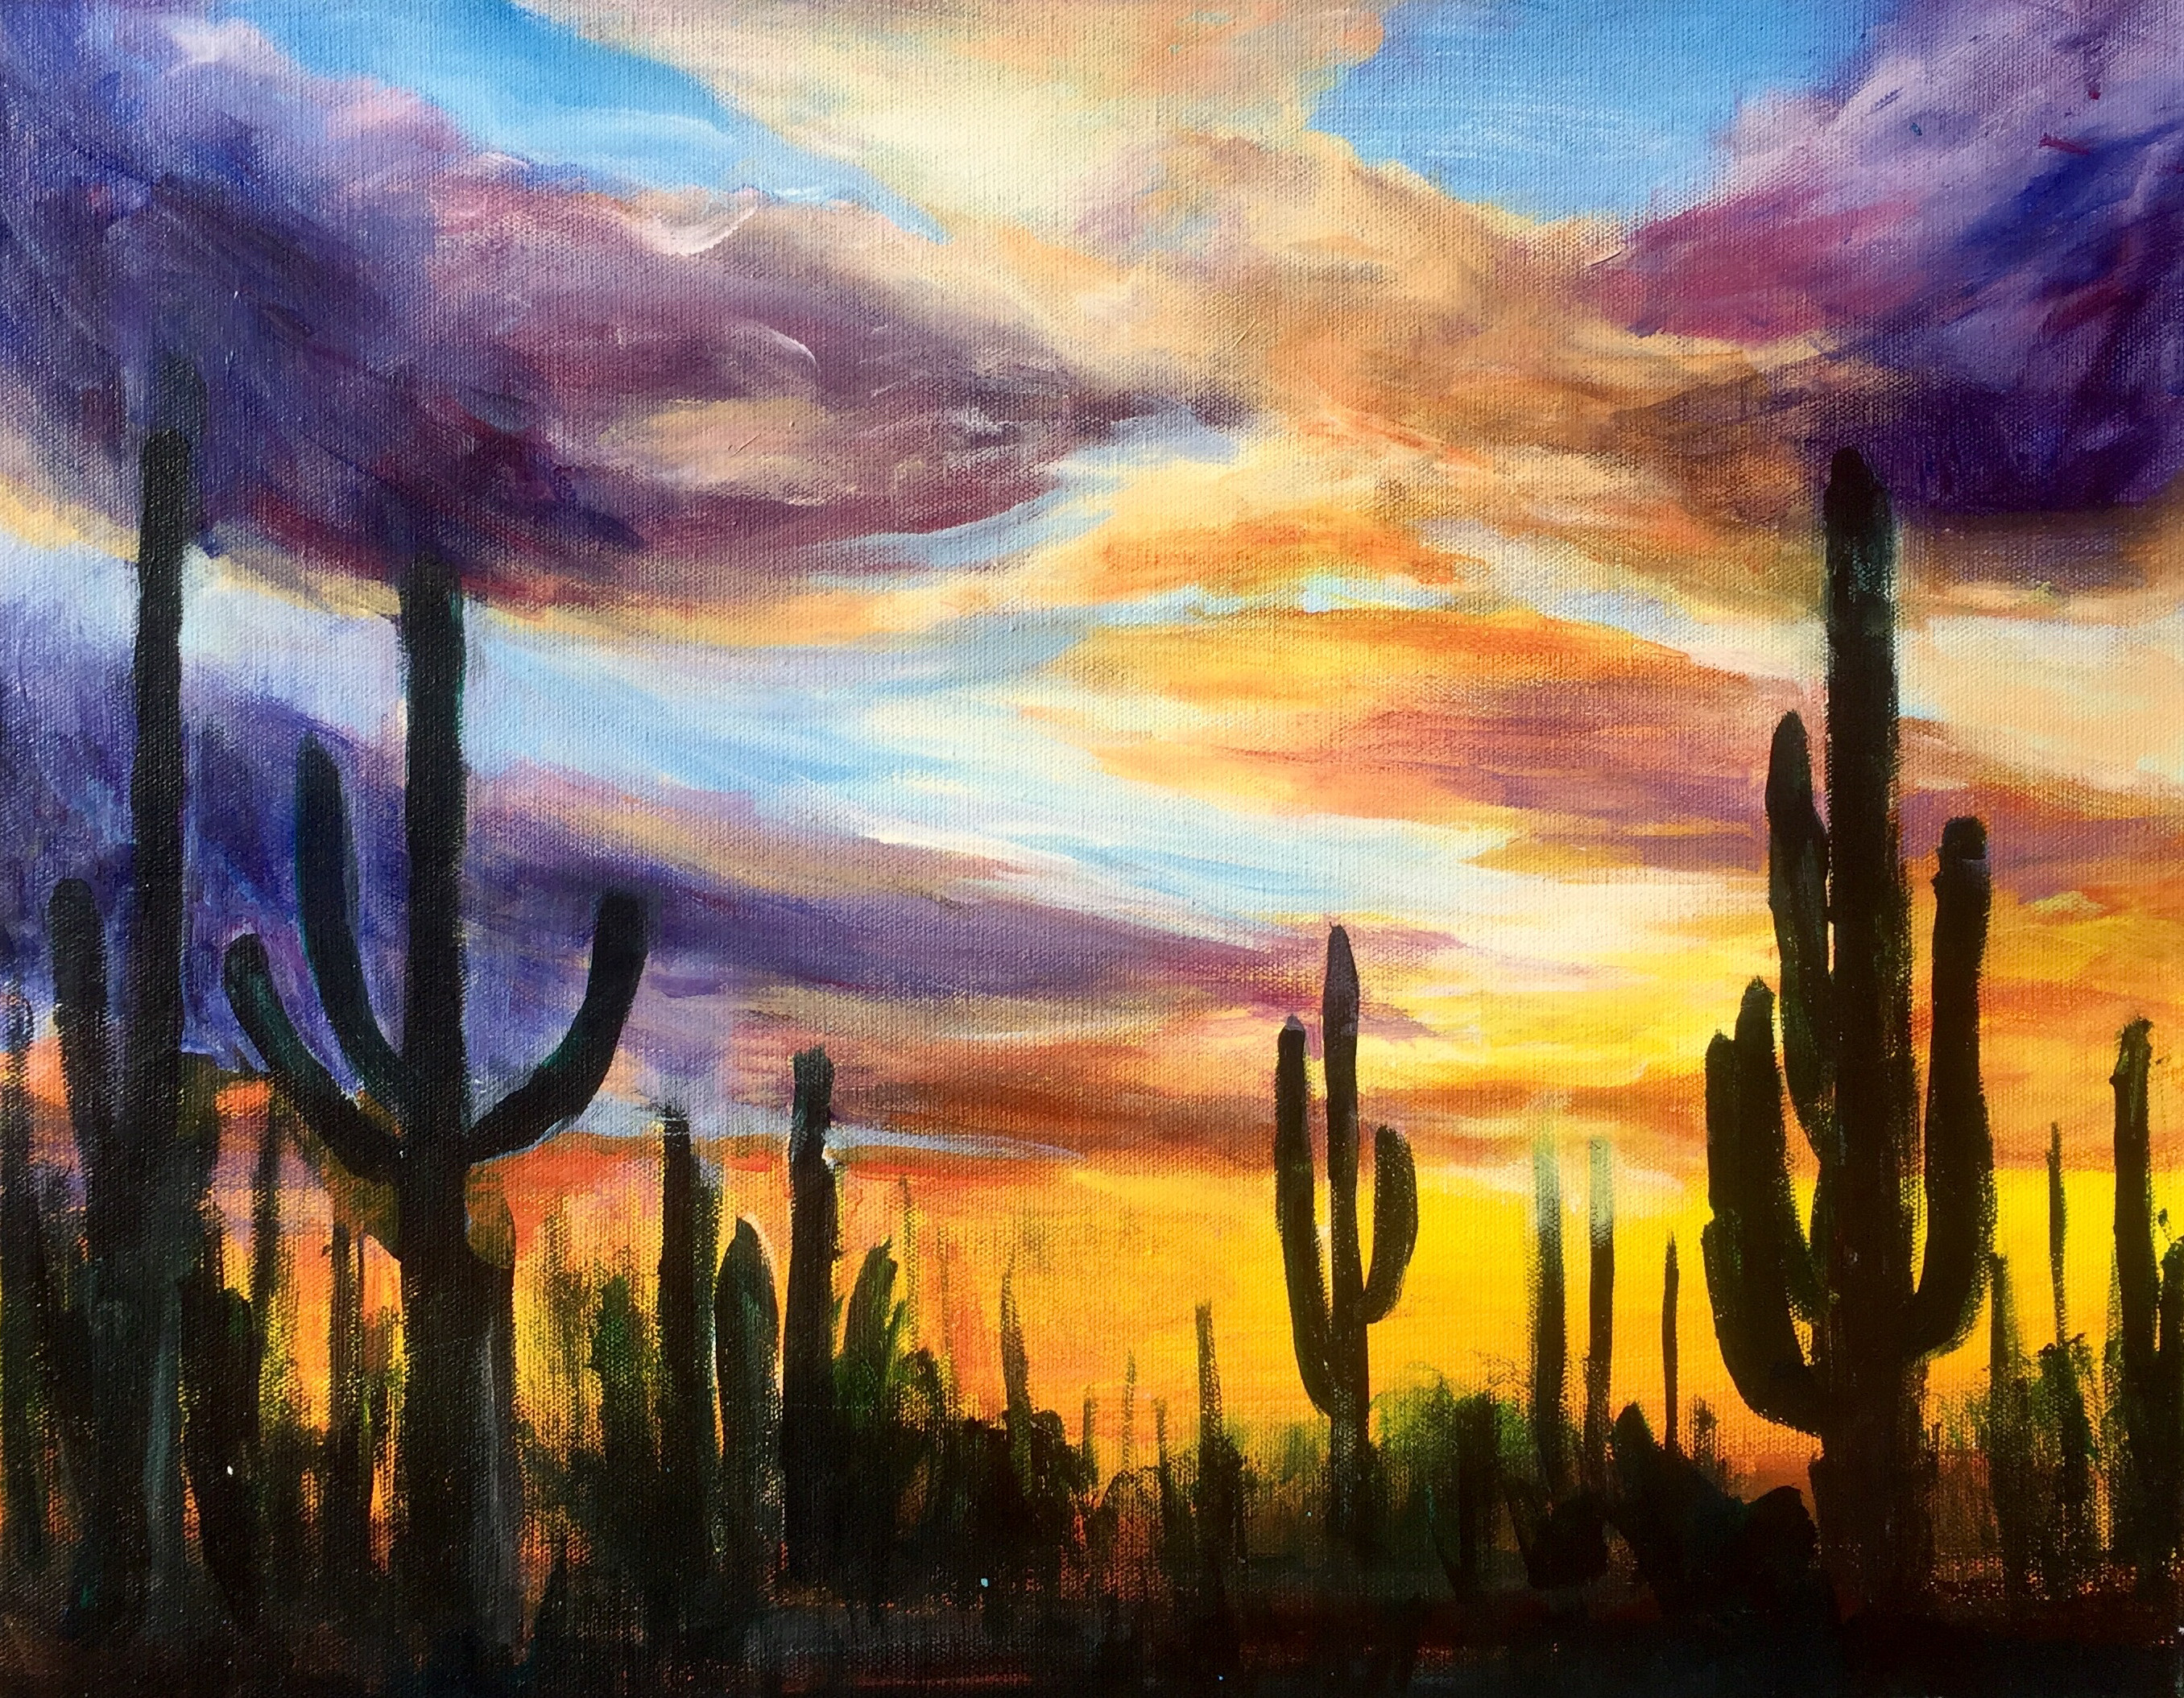 painting on an Arizona sunset with purple and orange clouds and cactus